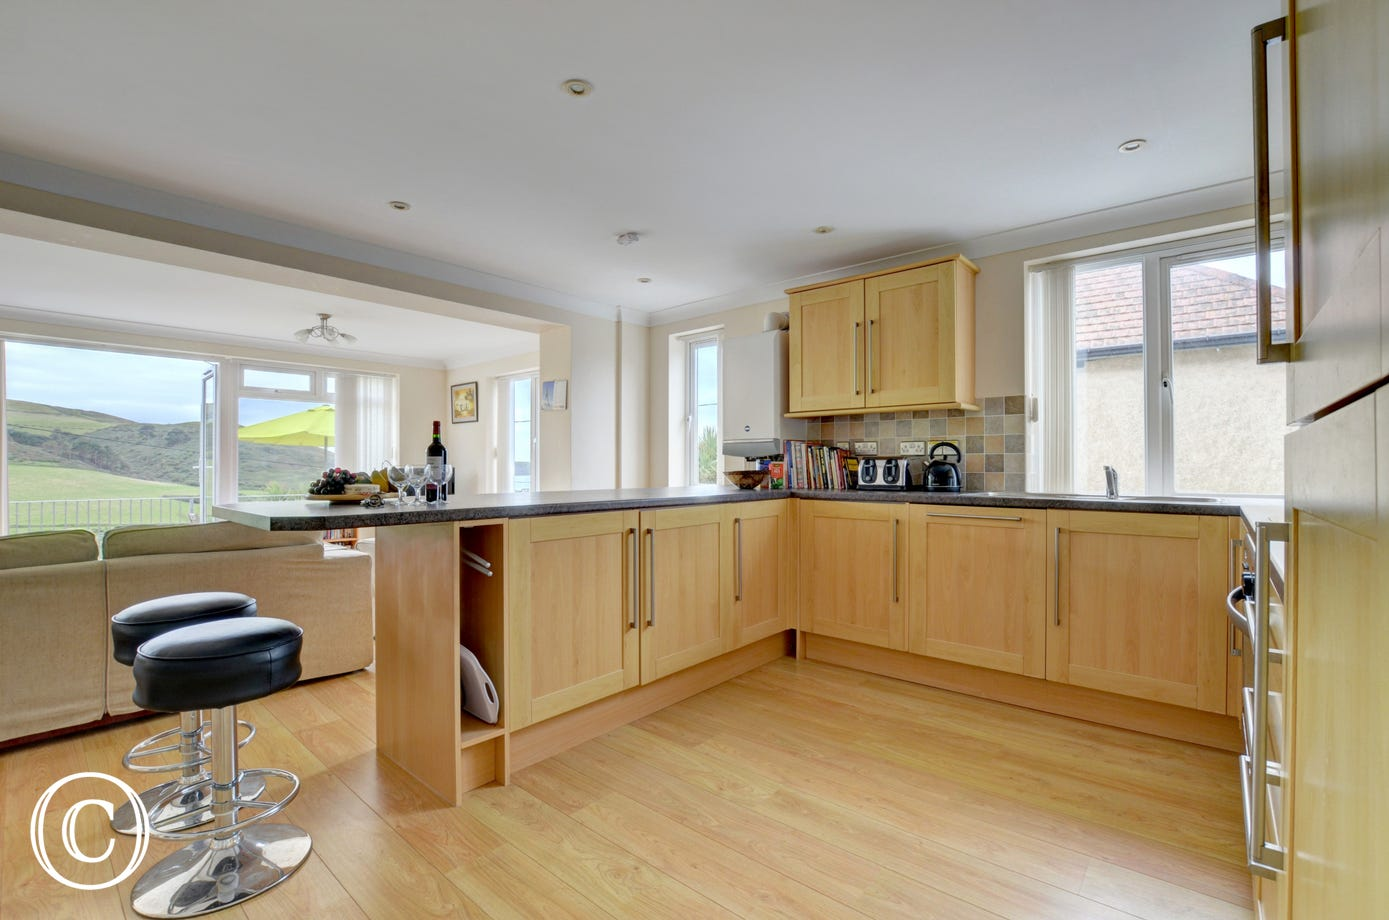 The kitchen has modern fitted units with ample storage space